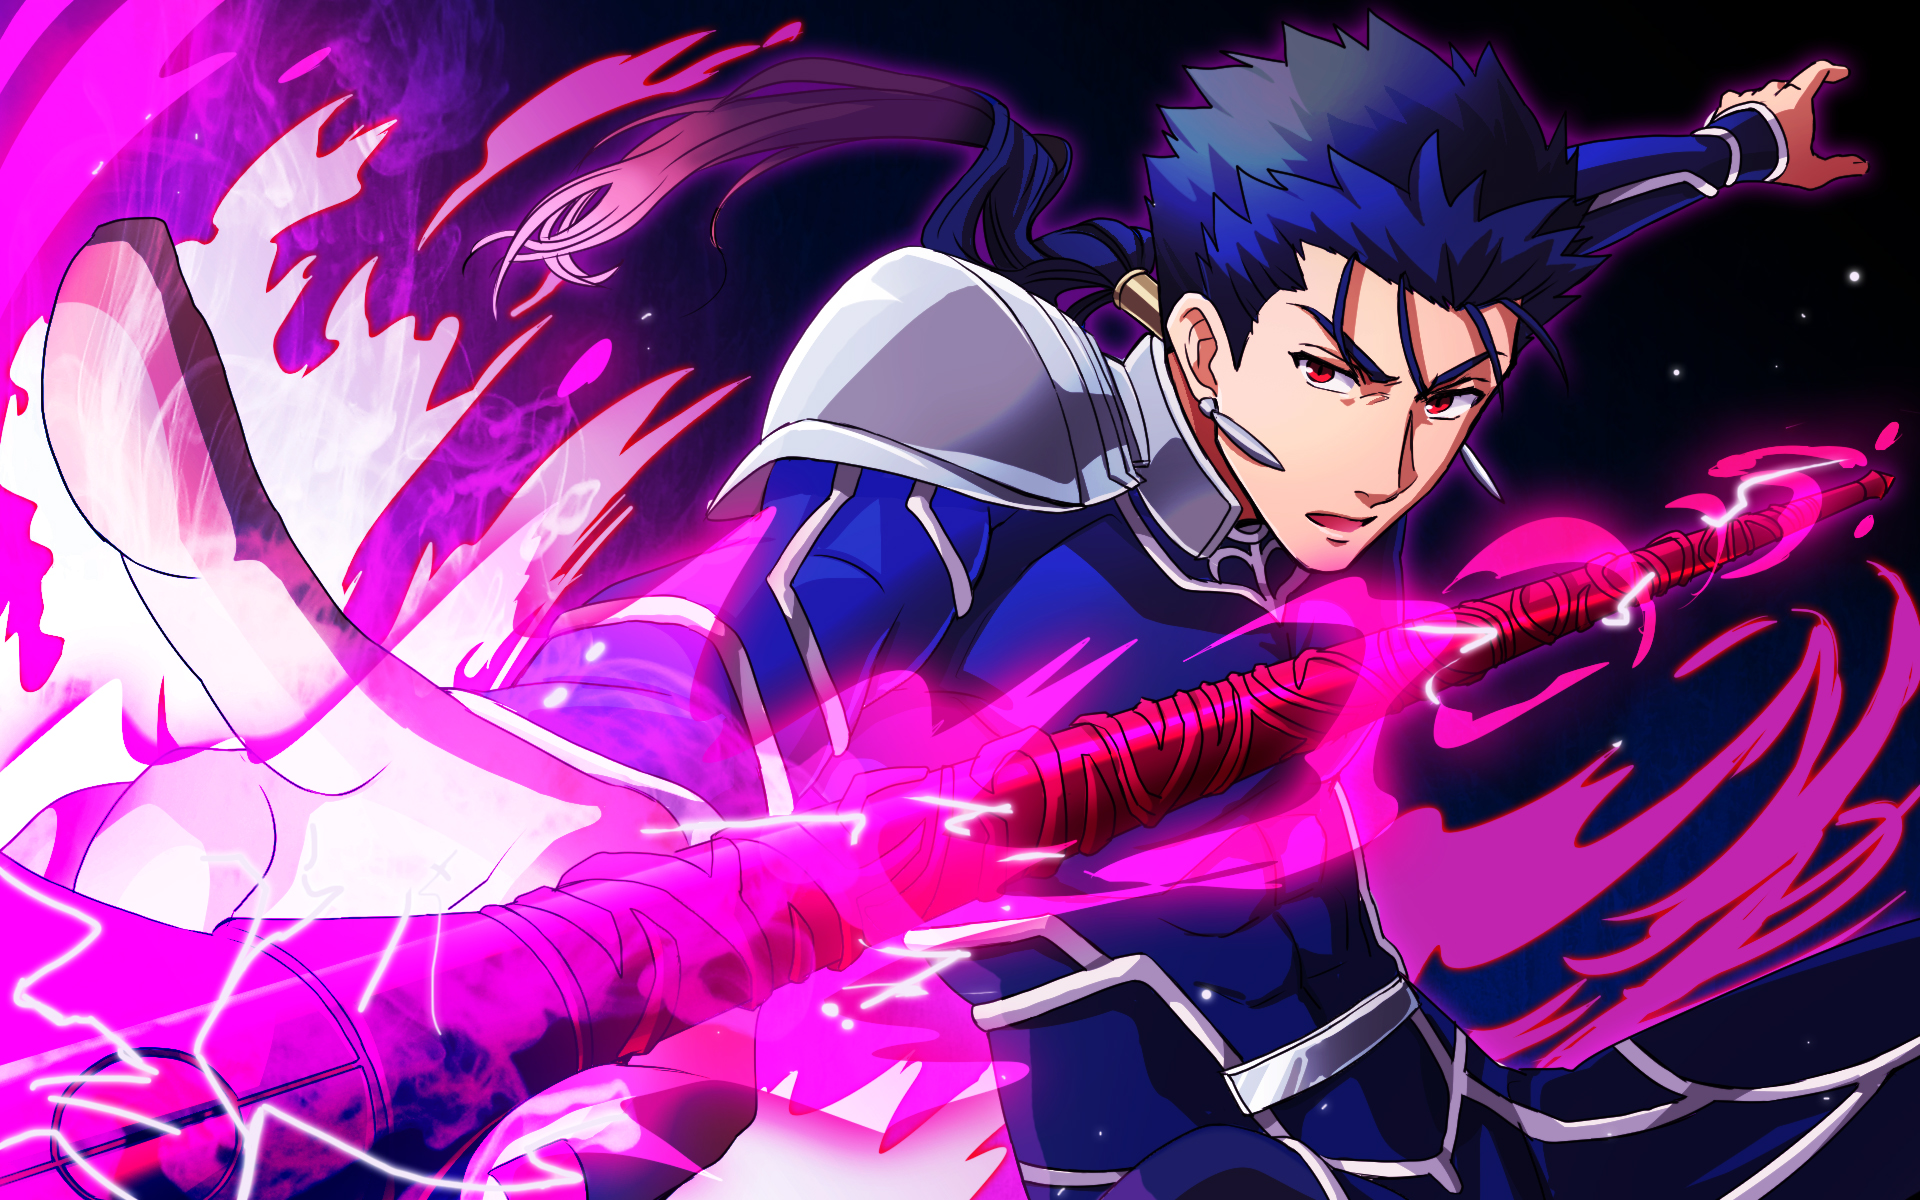 lancer (fate/stay night) wallpaper #1869131 - zerochan anime image board